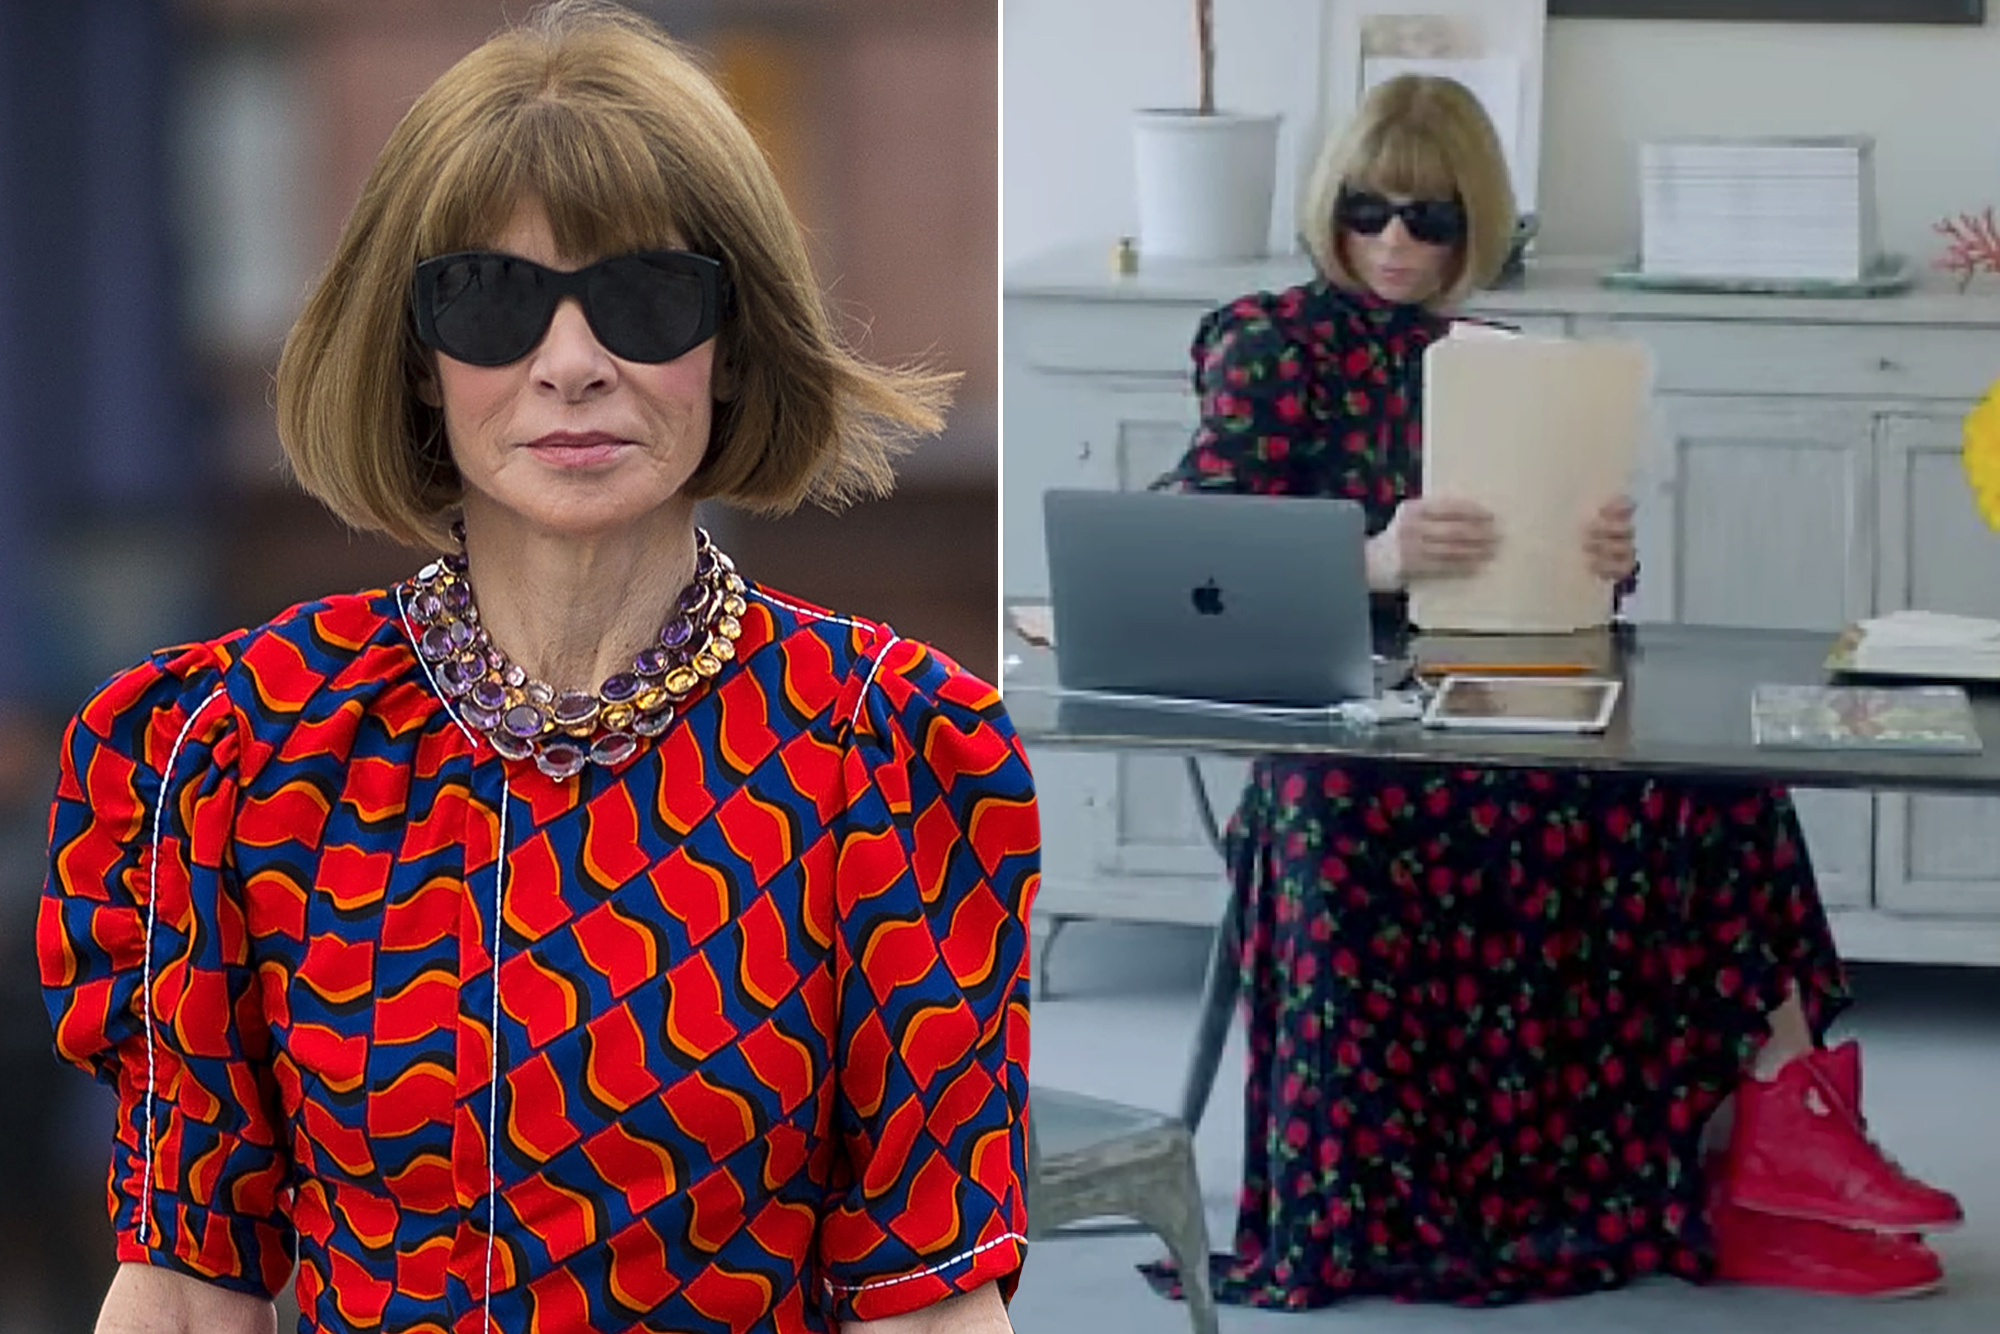 Anna Wintour collaborates with Nike on